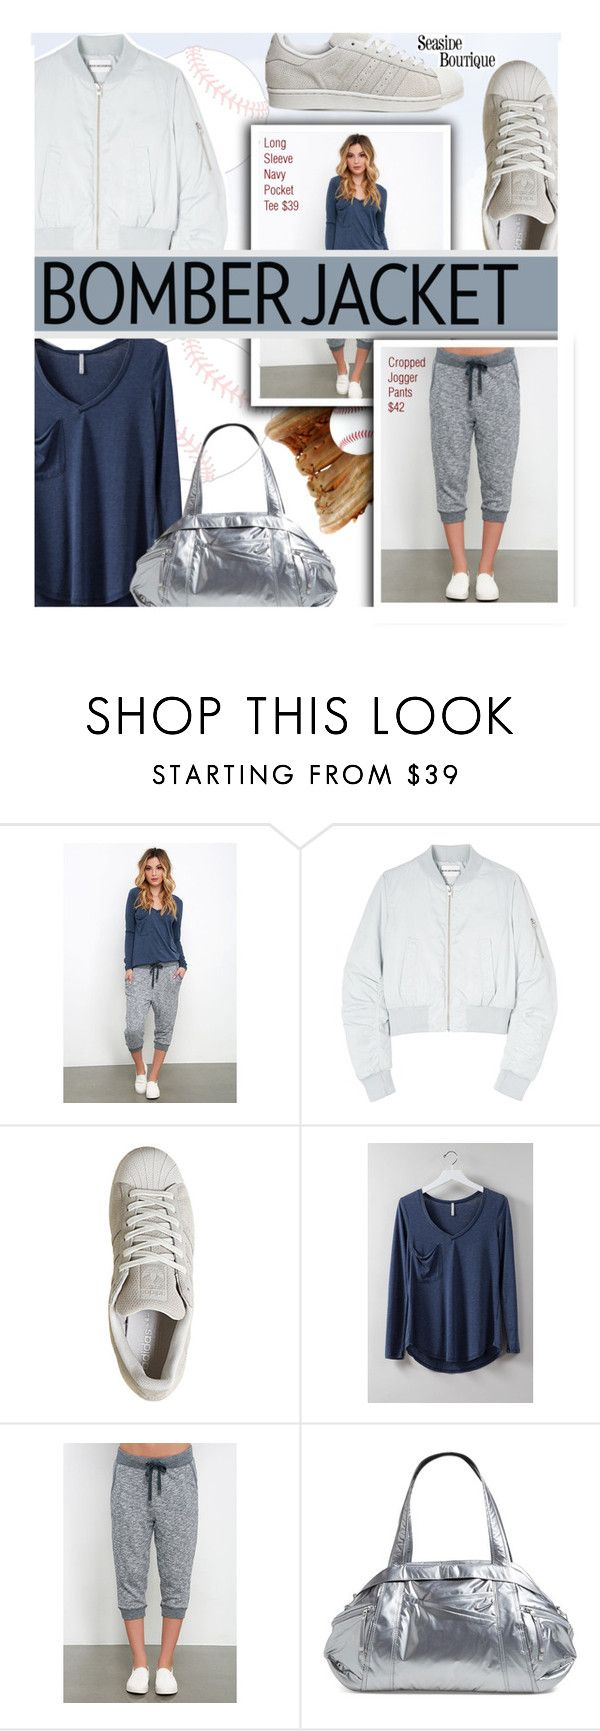 """""""Winter Style: Bomber Jackets"""" by seaside-boutique ❤ liked on Polyvore featuring Won Hundred, adidas, NIKE, women's clothing, women, female, woman, misses and juniors"""